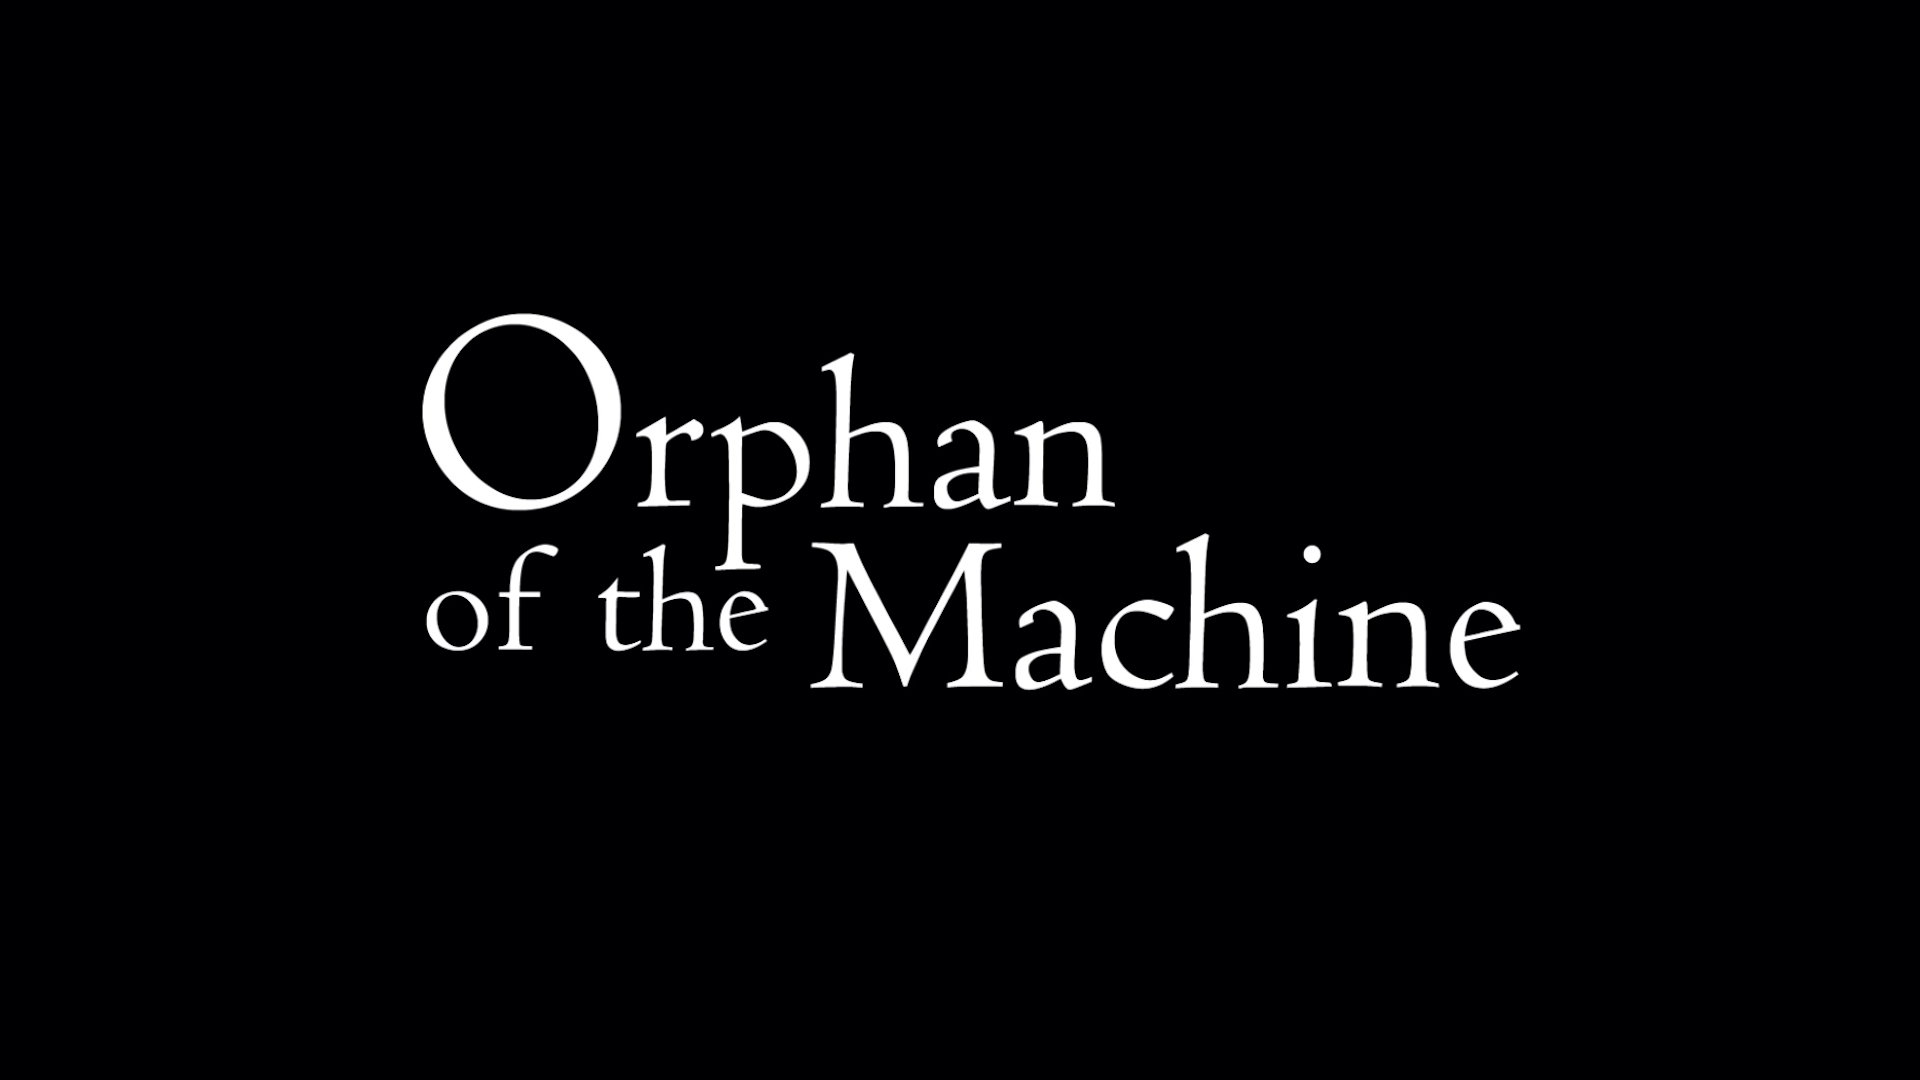 orphan of the machine